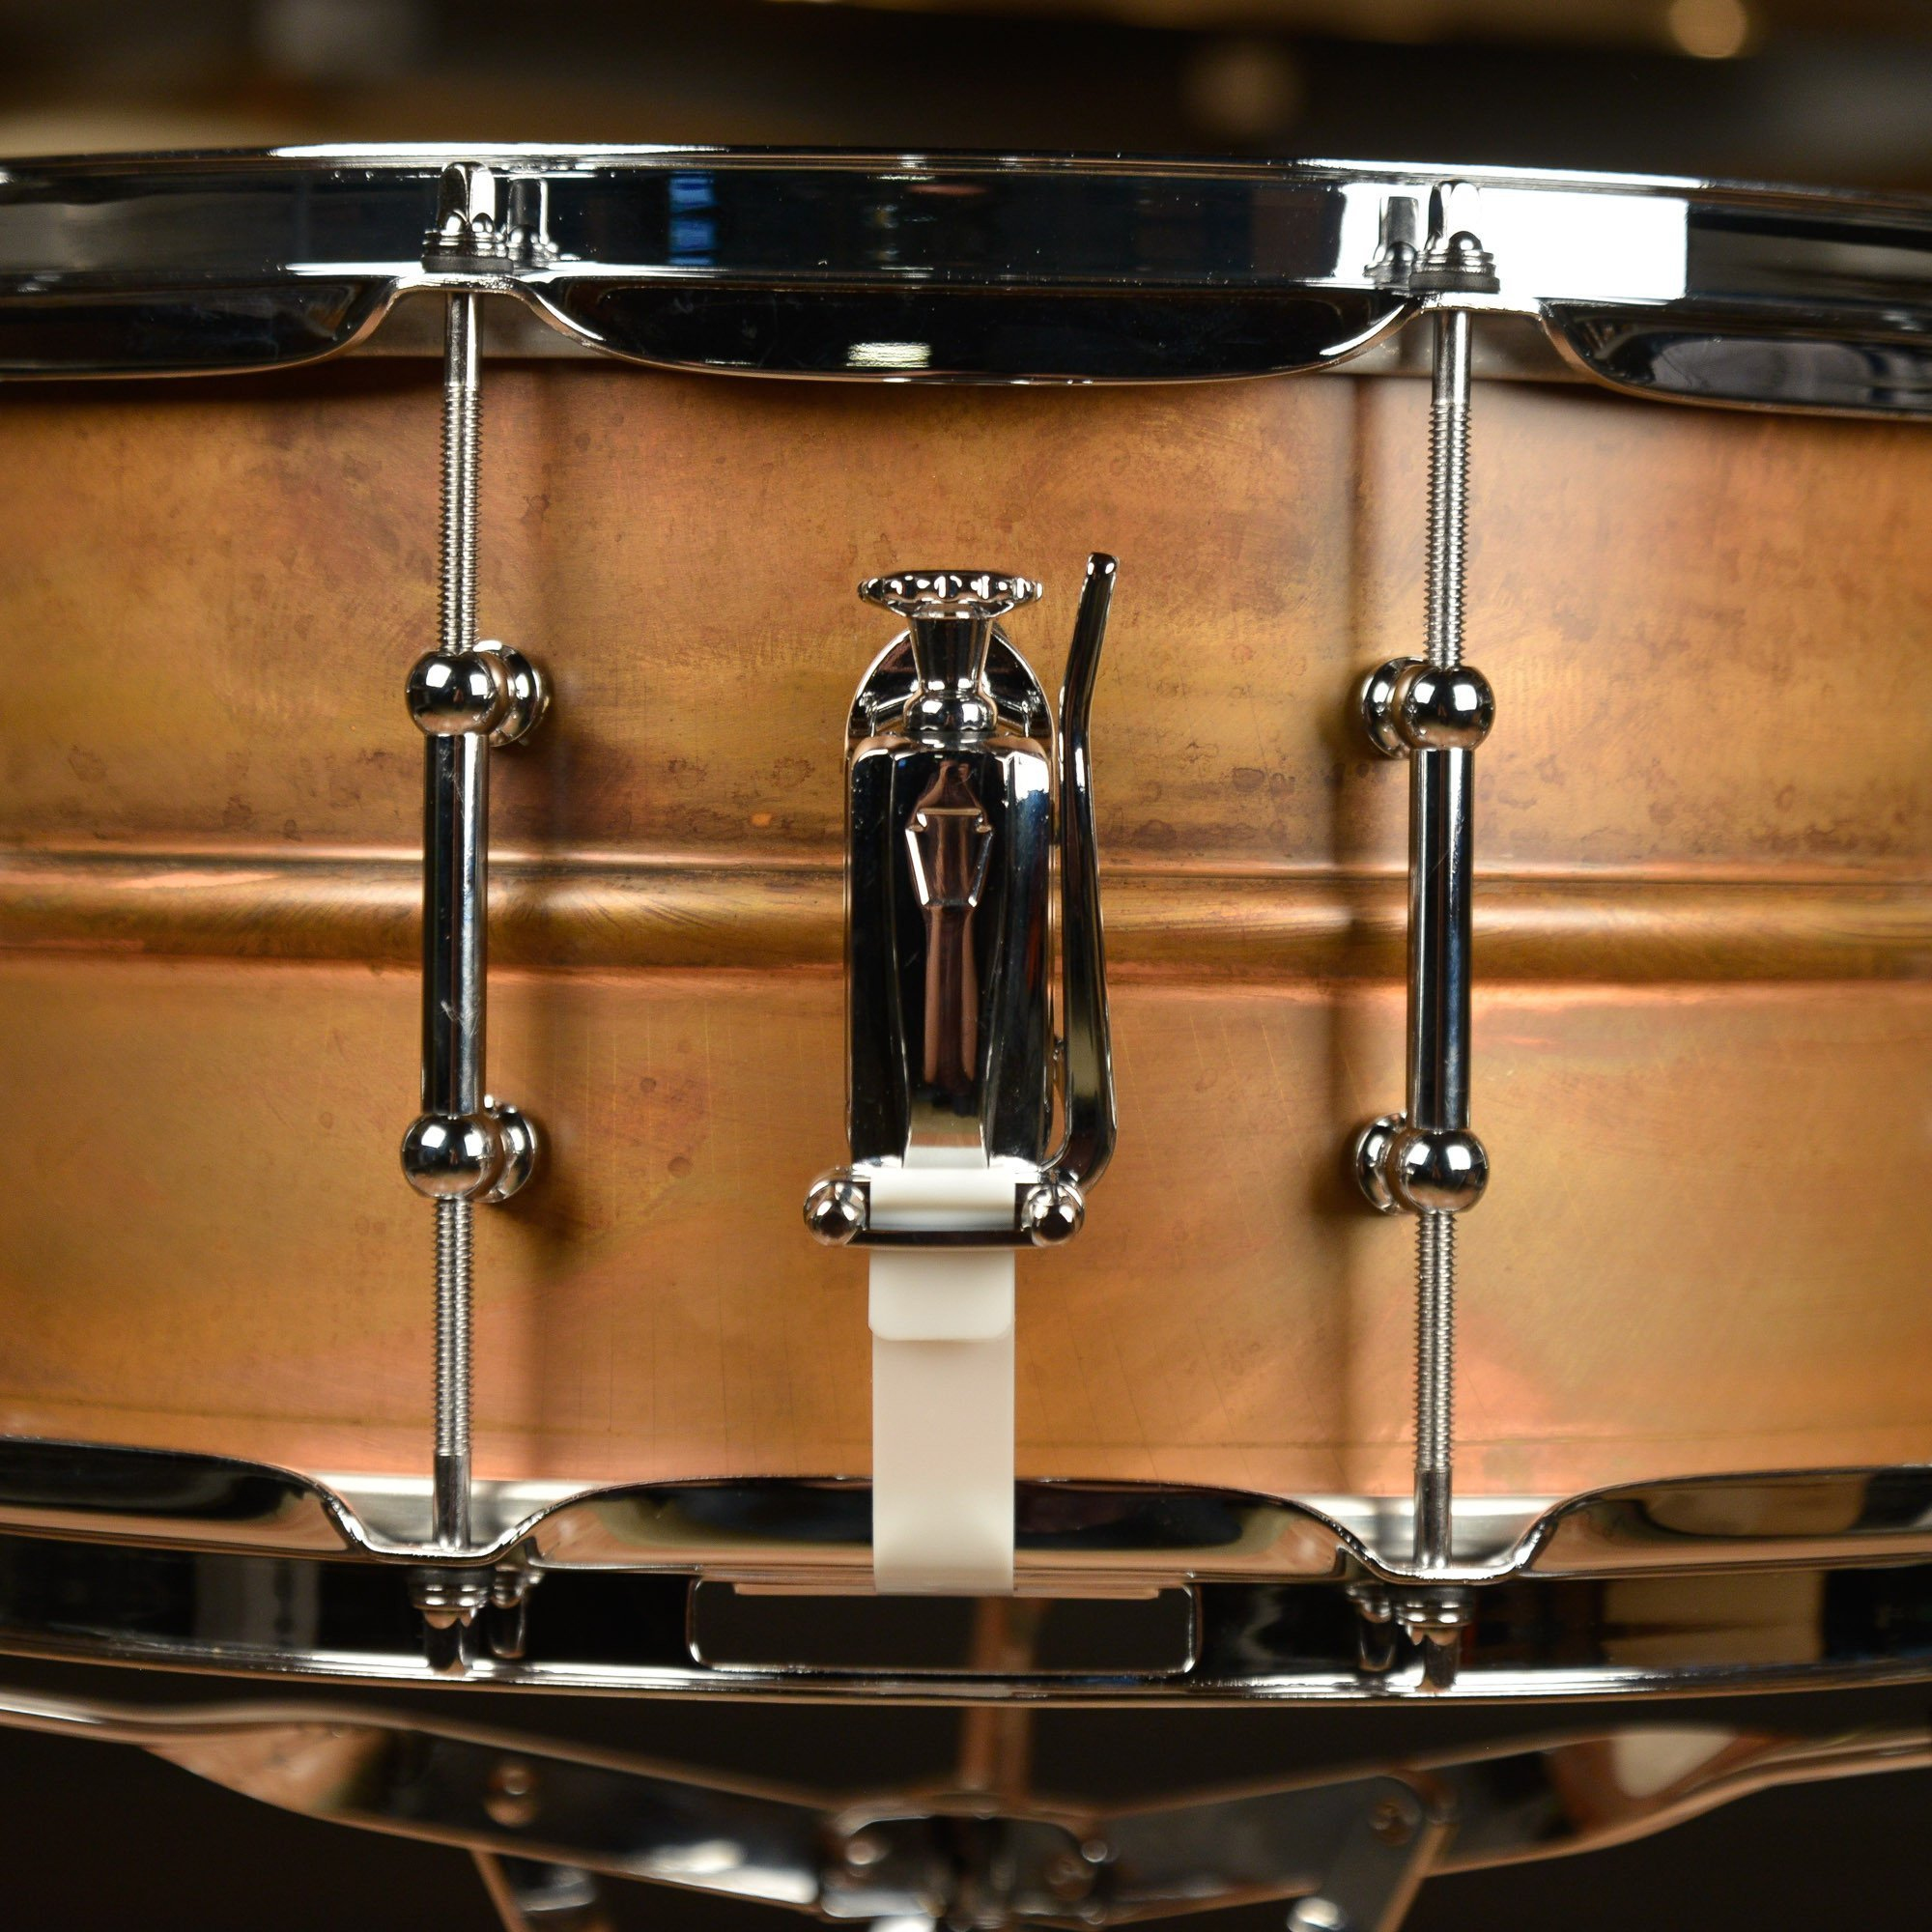 Ludwig Copper Phonic Smooth Snare Drum 14 x 6.5 in. Raw Smooth Finish with Tube Lugs by Ludwig (Image #4)